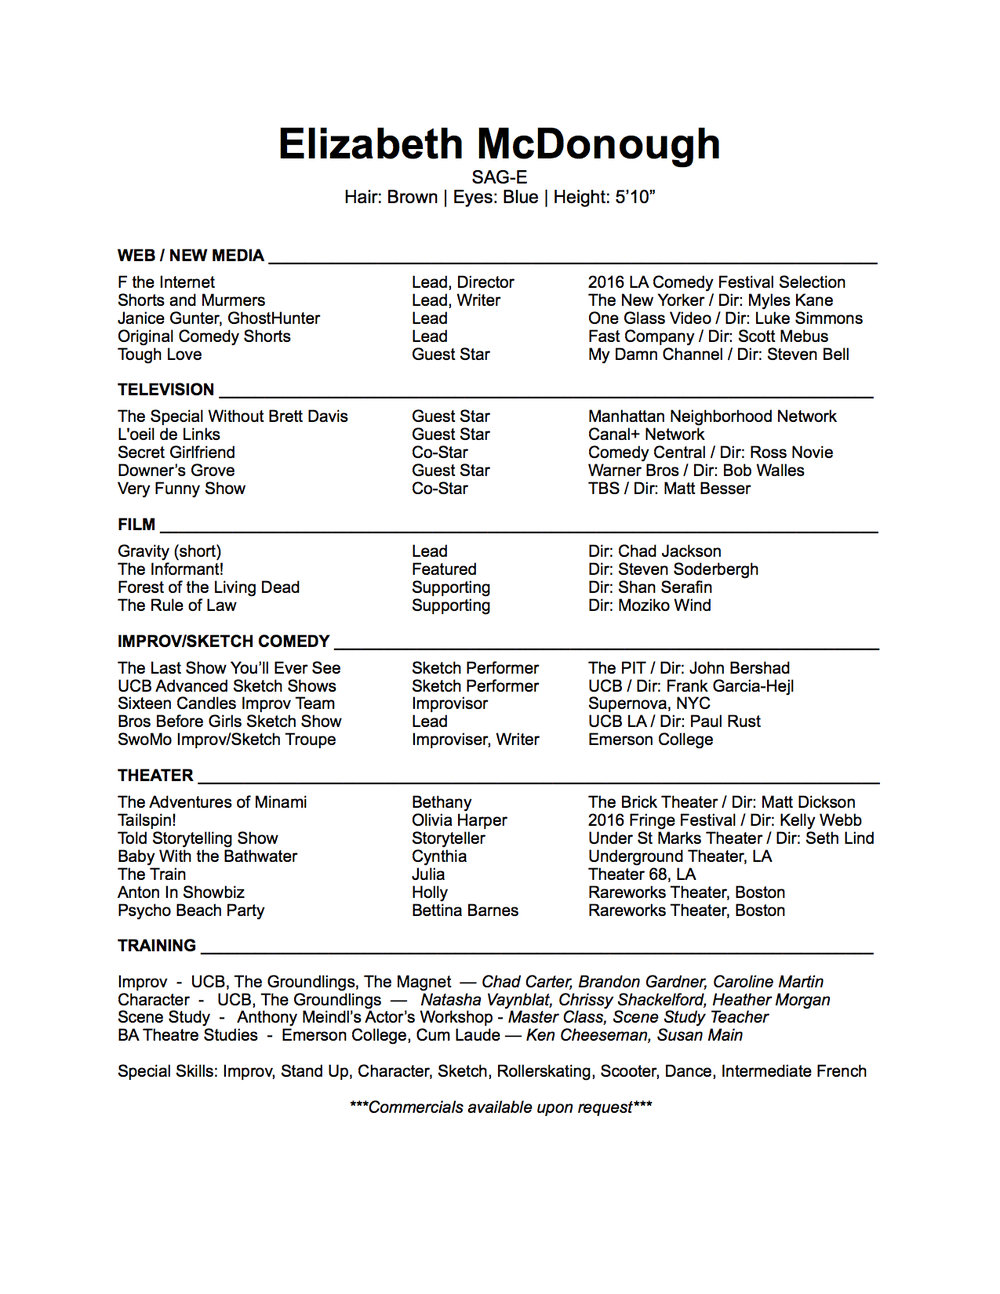 ELIZABETH MCDONOUGH - NEW RESUME 2017 - Website.jpg